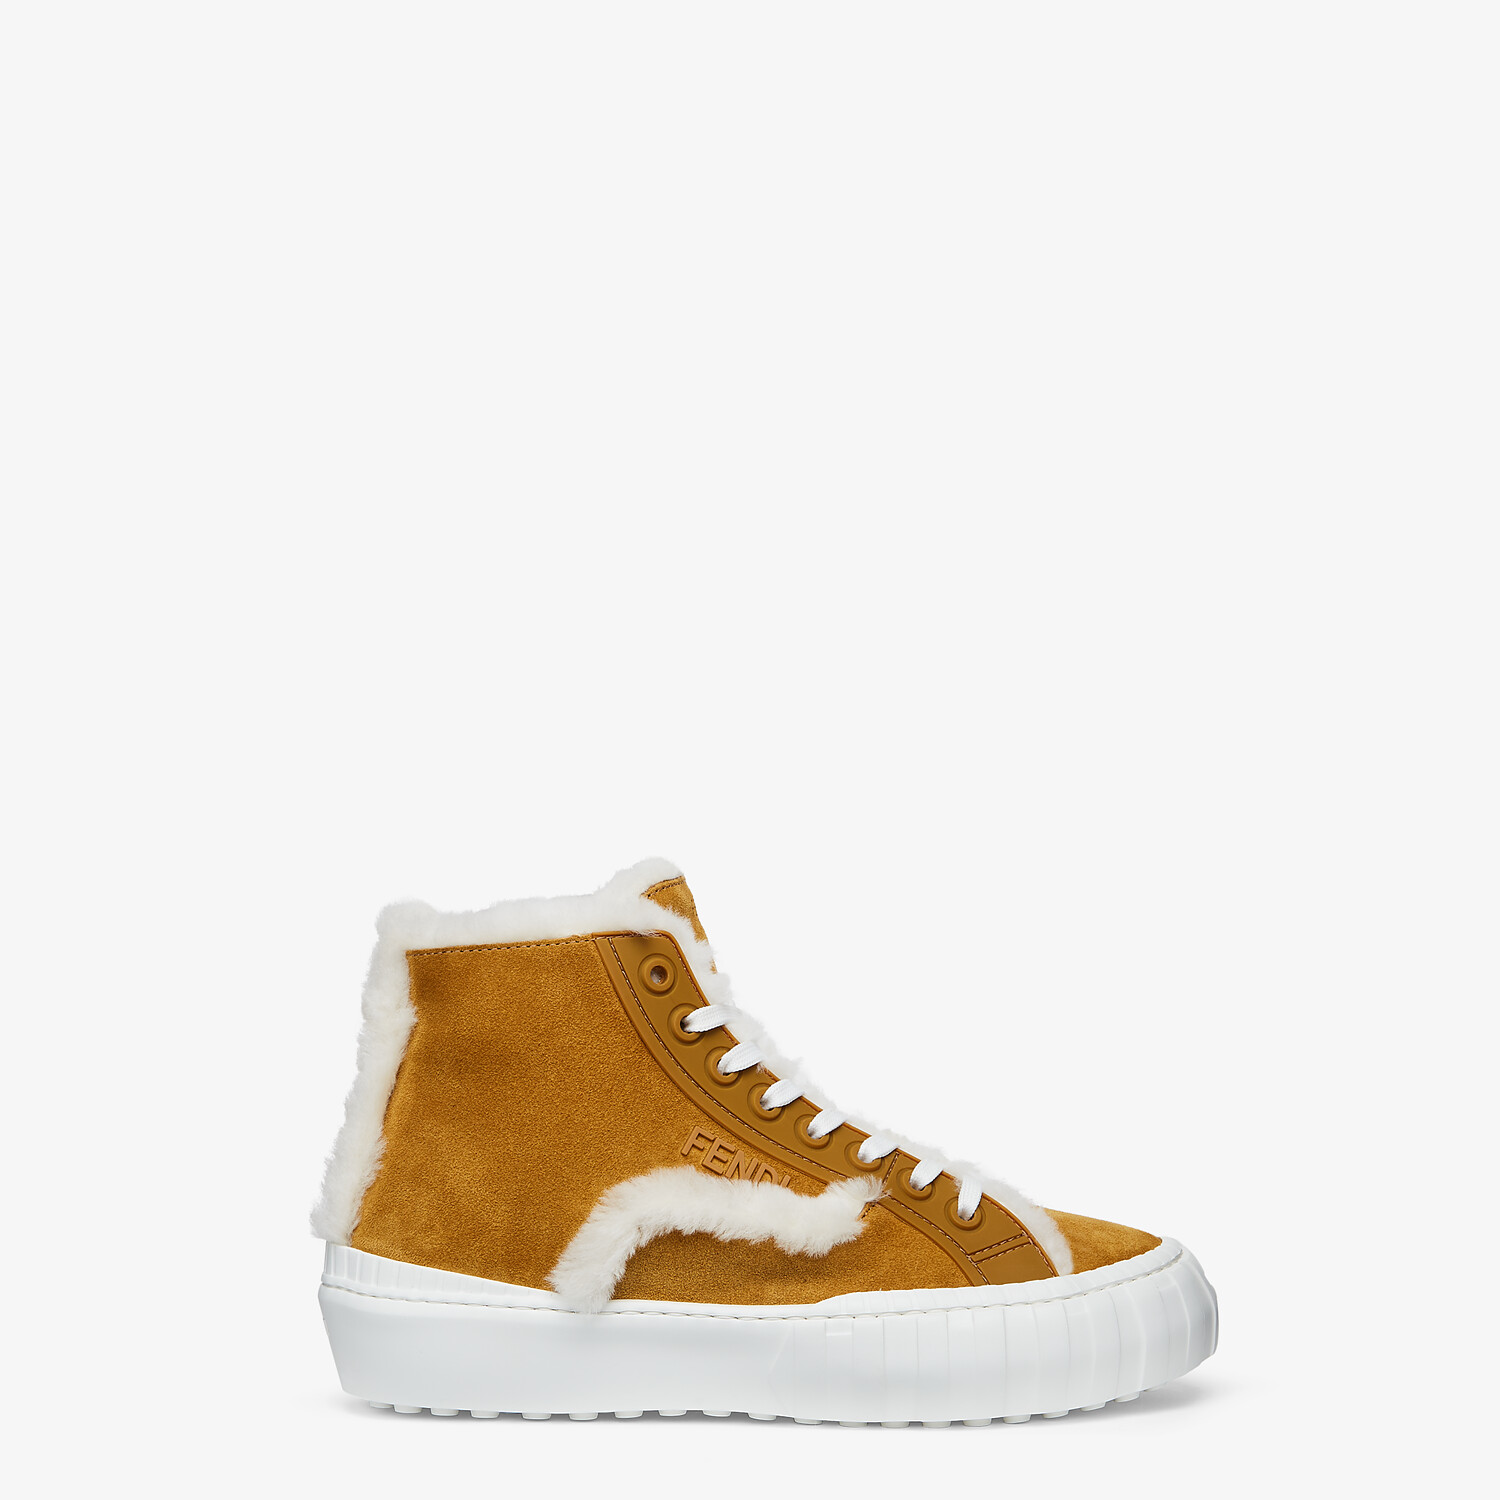 FENDI FENDI FORCE - Yellow suede high-tops - view 1 detail